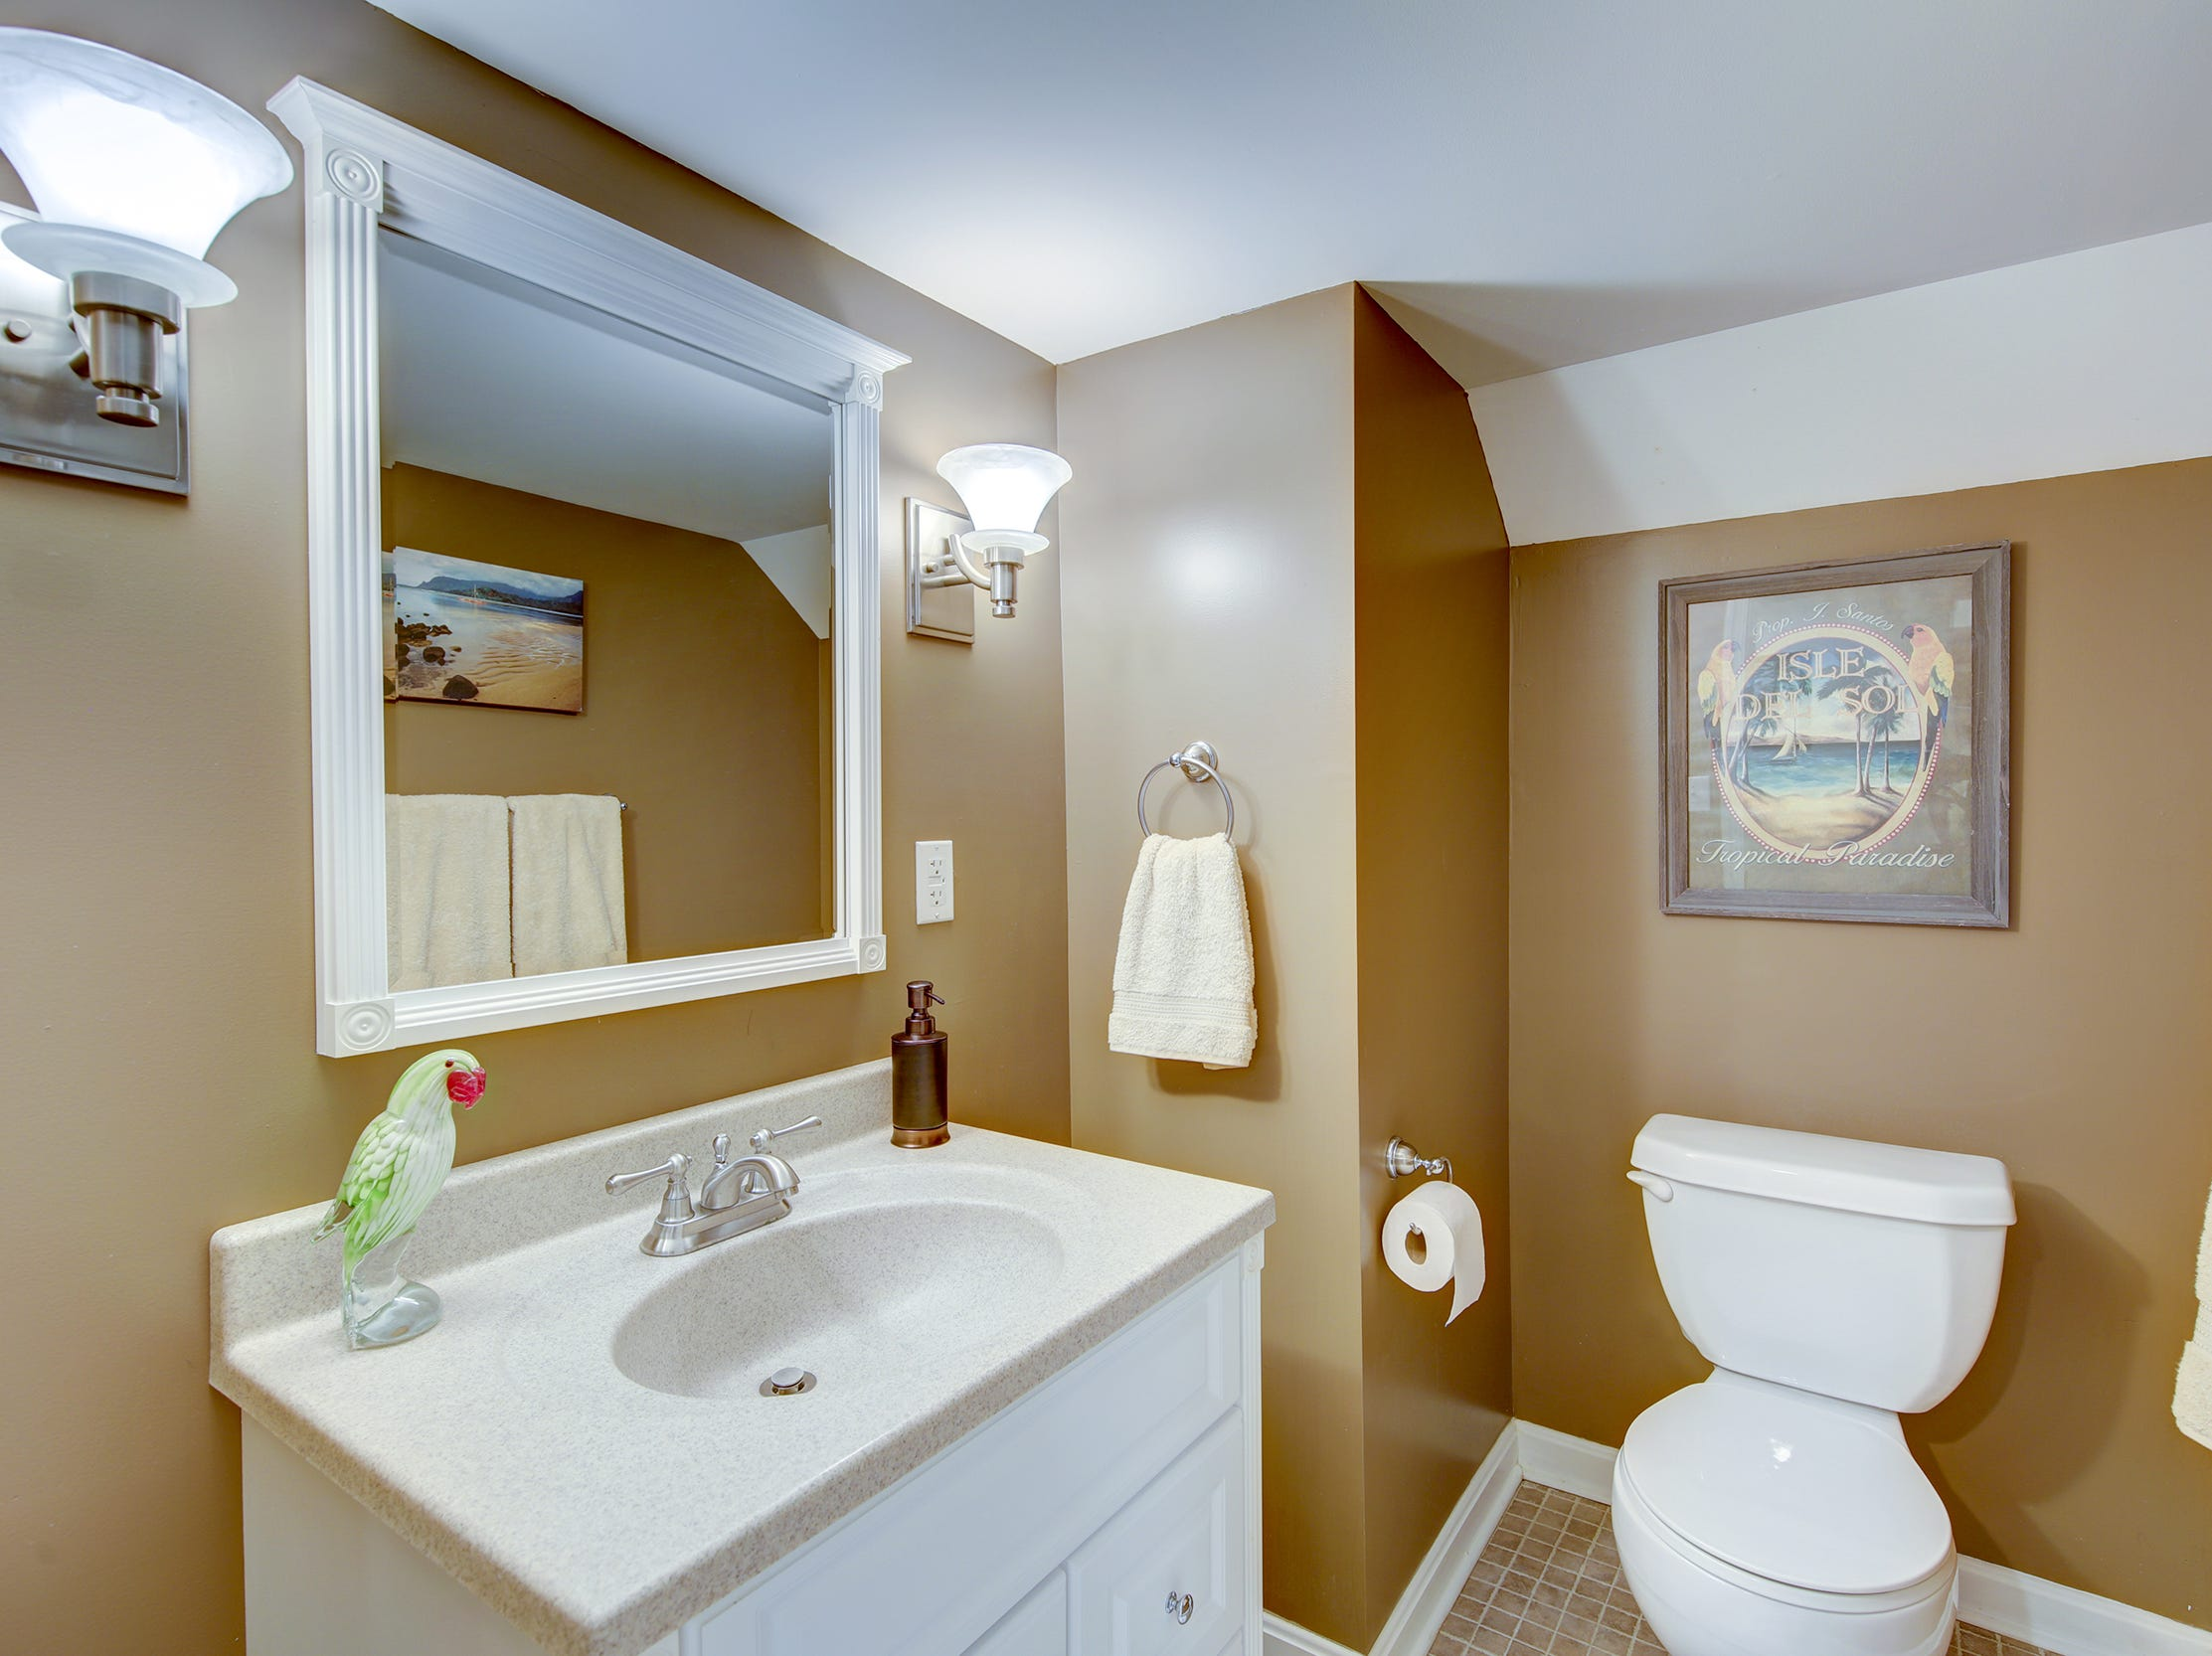 The house at 204 Lakeview Shores at Rehoboth Beach has four full bathrooms and two half baths.